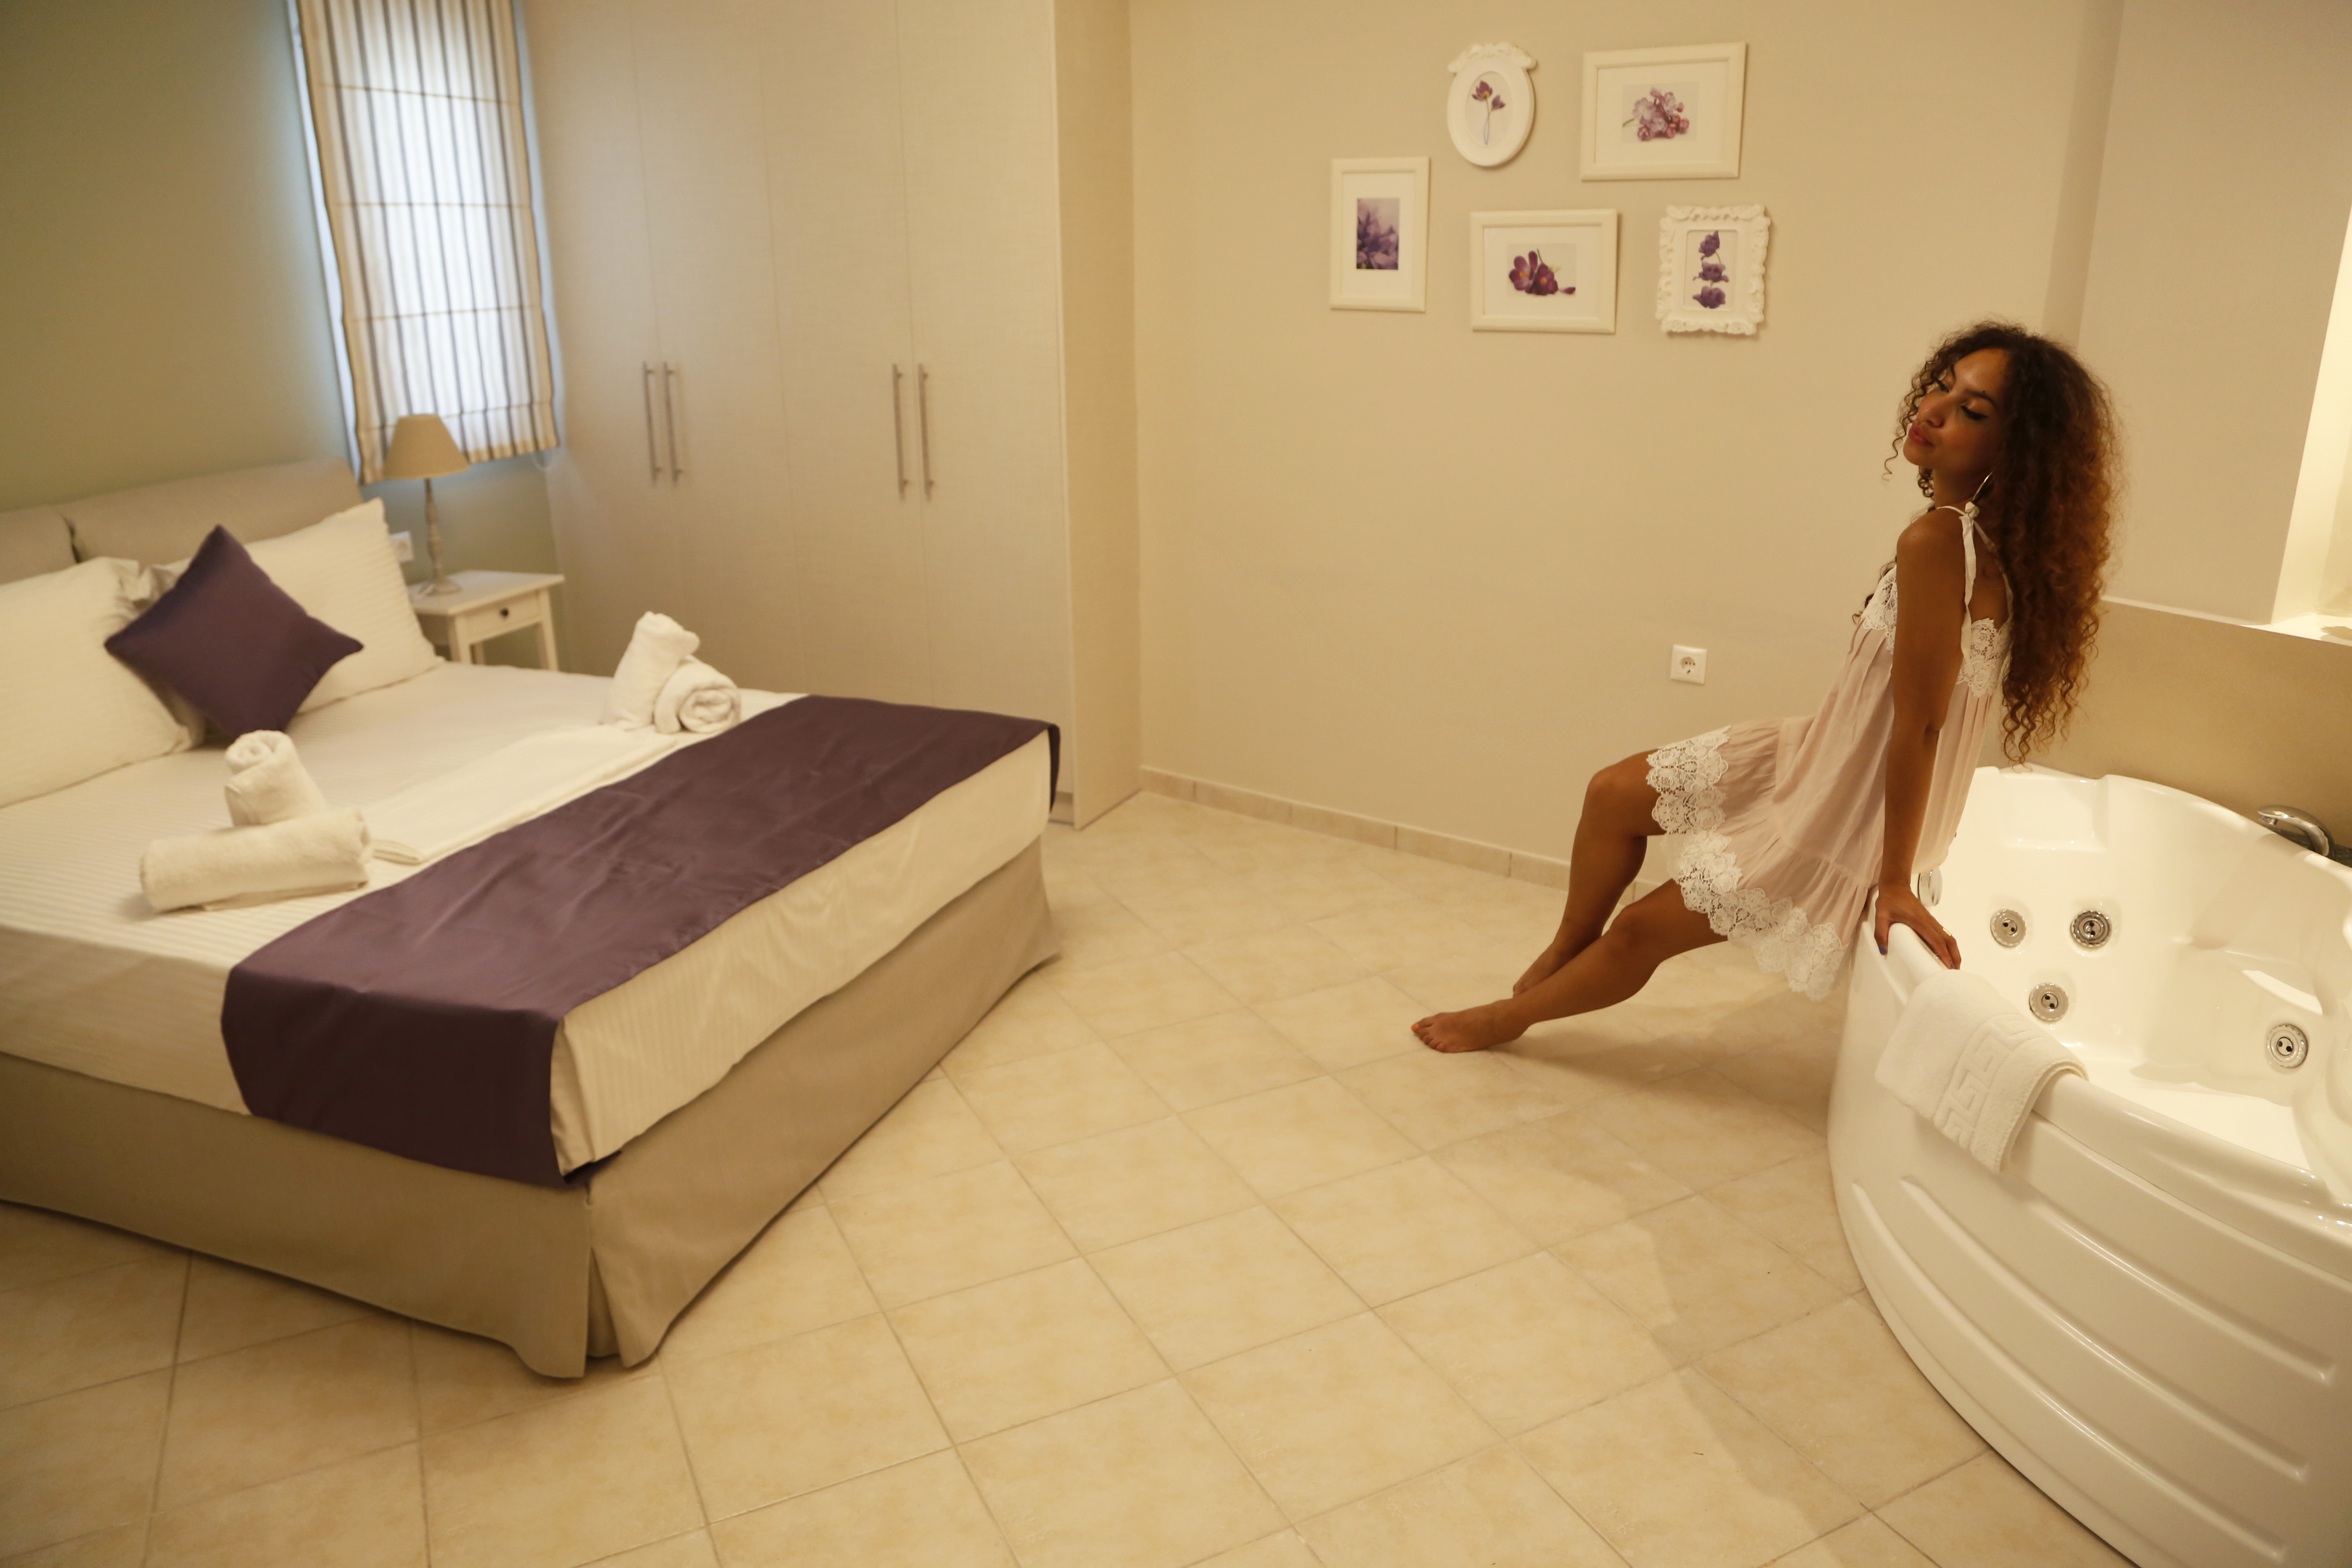 Hotel Review Lefkadios Suites Lefkada From Hats To Heelsfrom  # Muebles Nisi Bogota